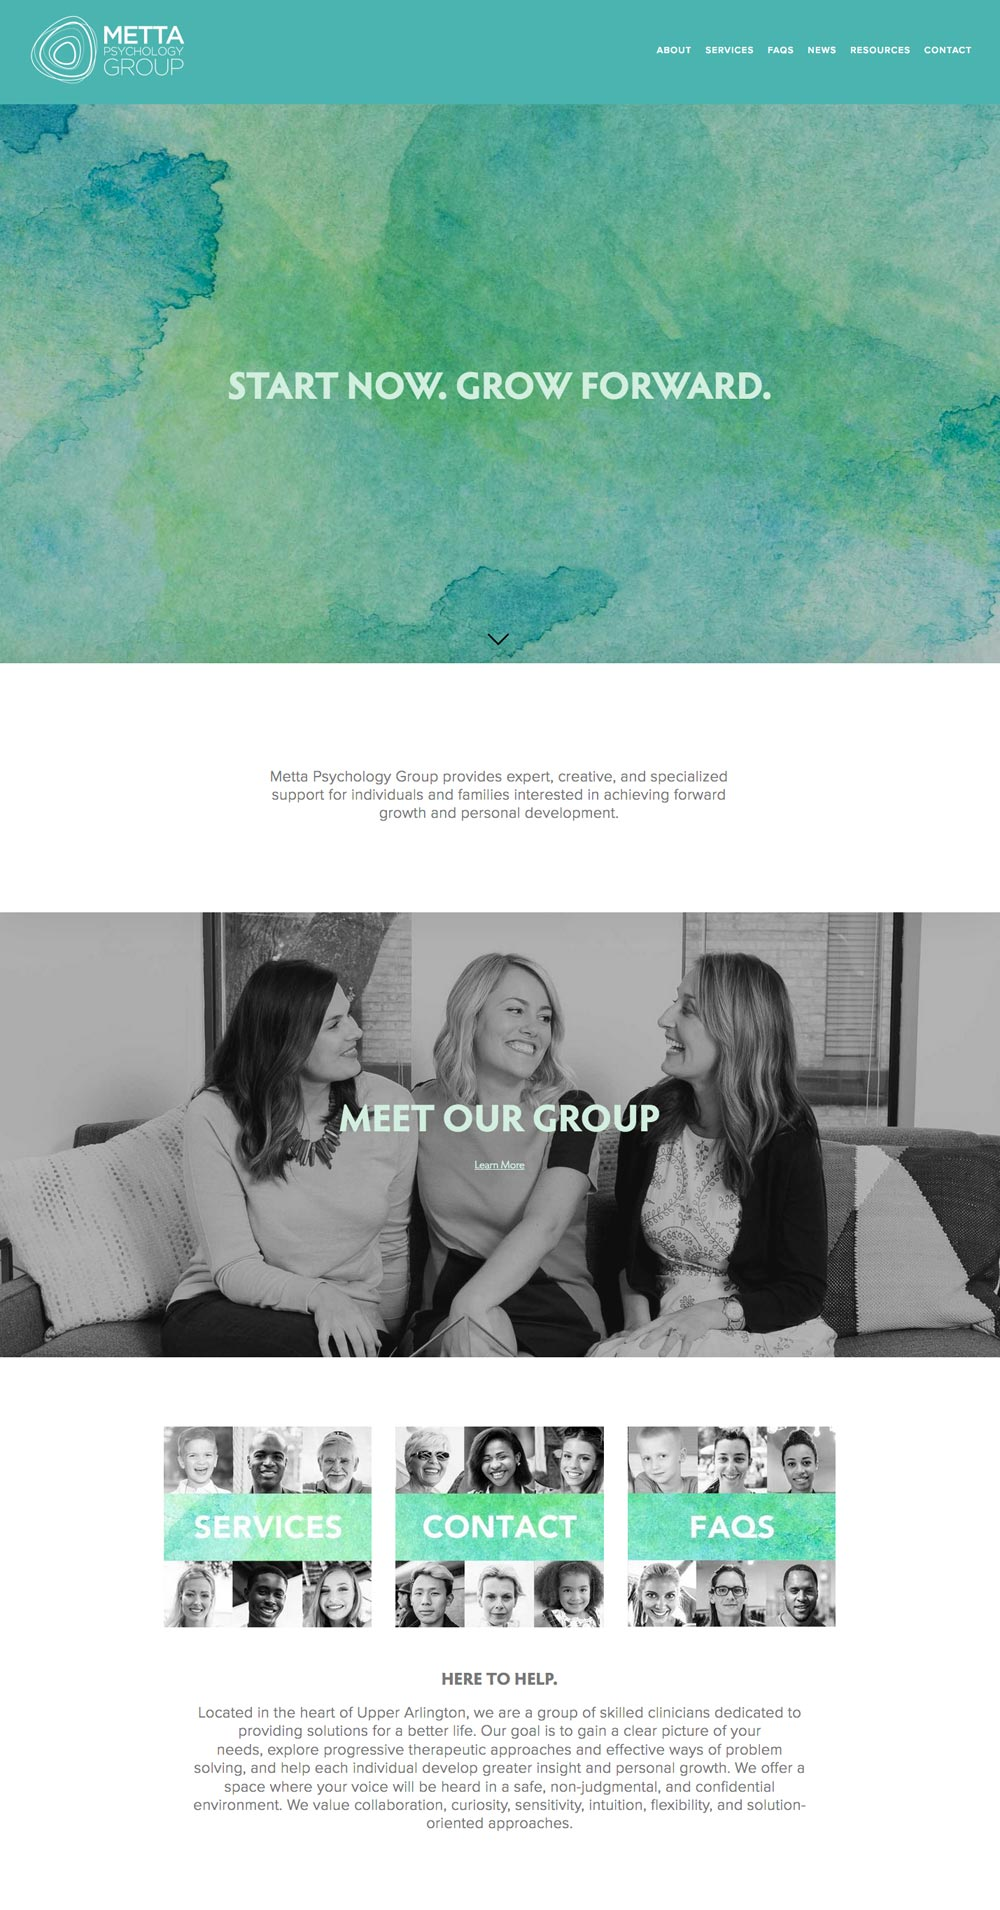 Metta Psychology homepage by Columbus website design firm Sevell